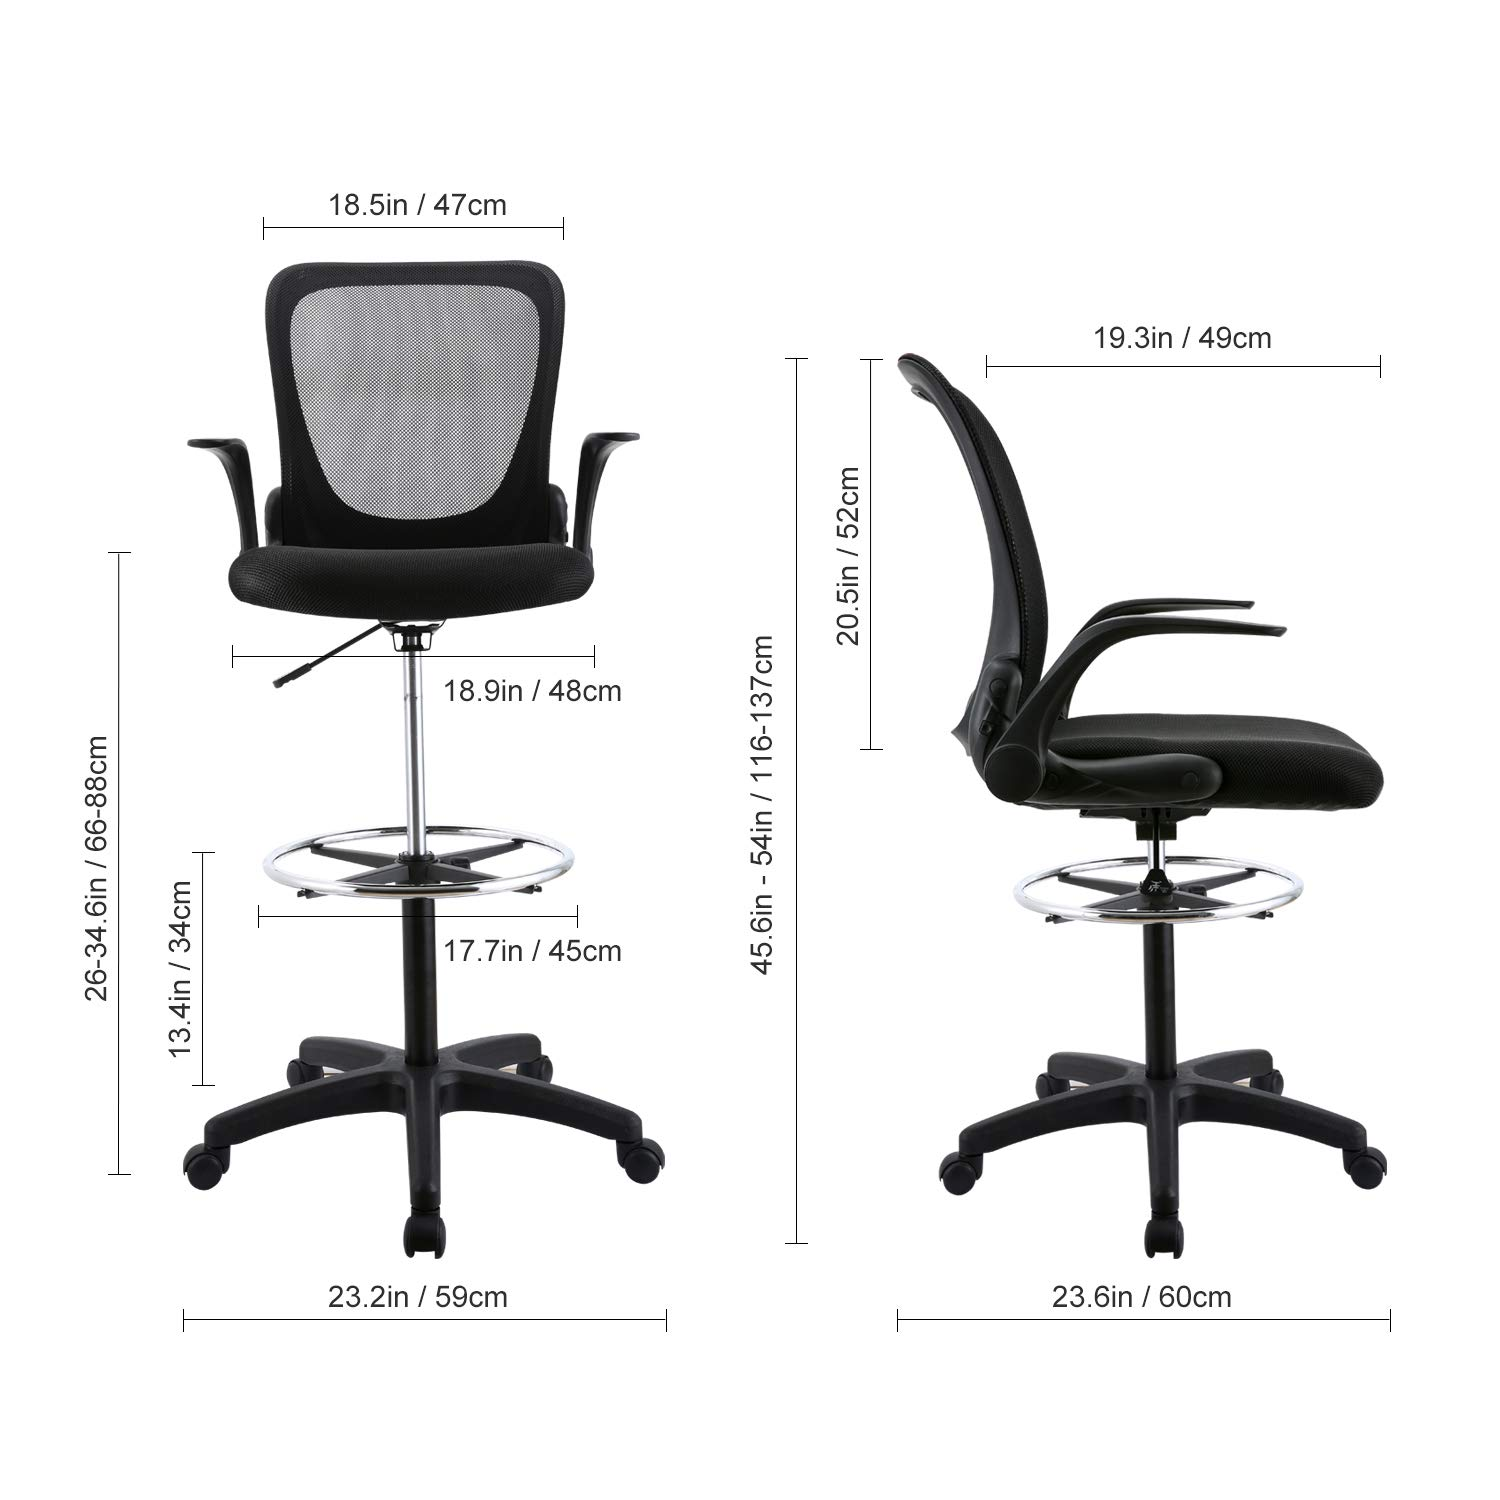 YOUNIS Drafting Chair with Black Fabric Seat, Adjustable Armrest and Foot Ring, Black Breathable mesh backrest, Reception Desk Chair, Tall Office Chair by YOUNIS (Image #2)